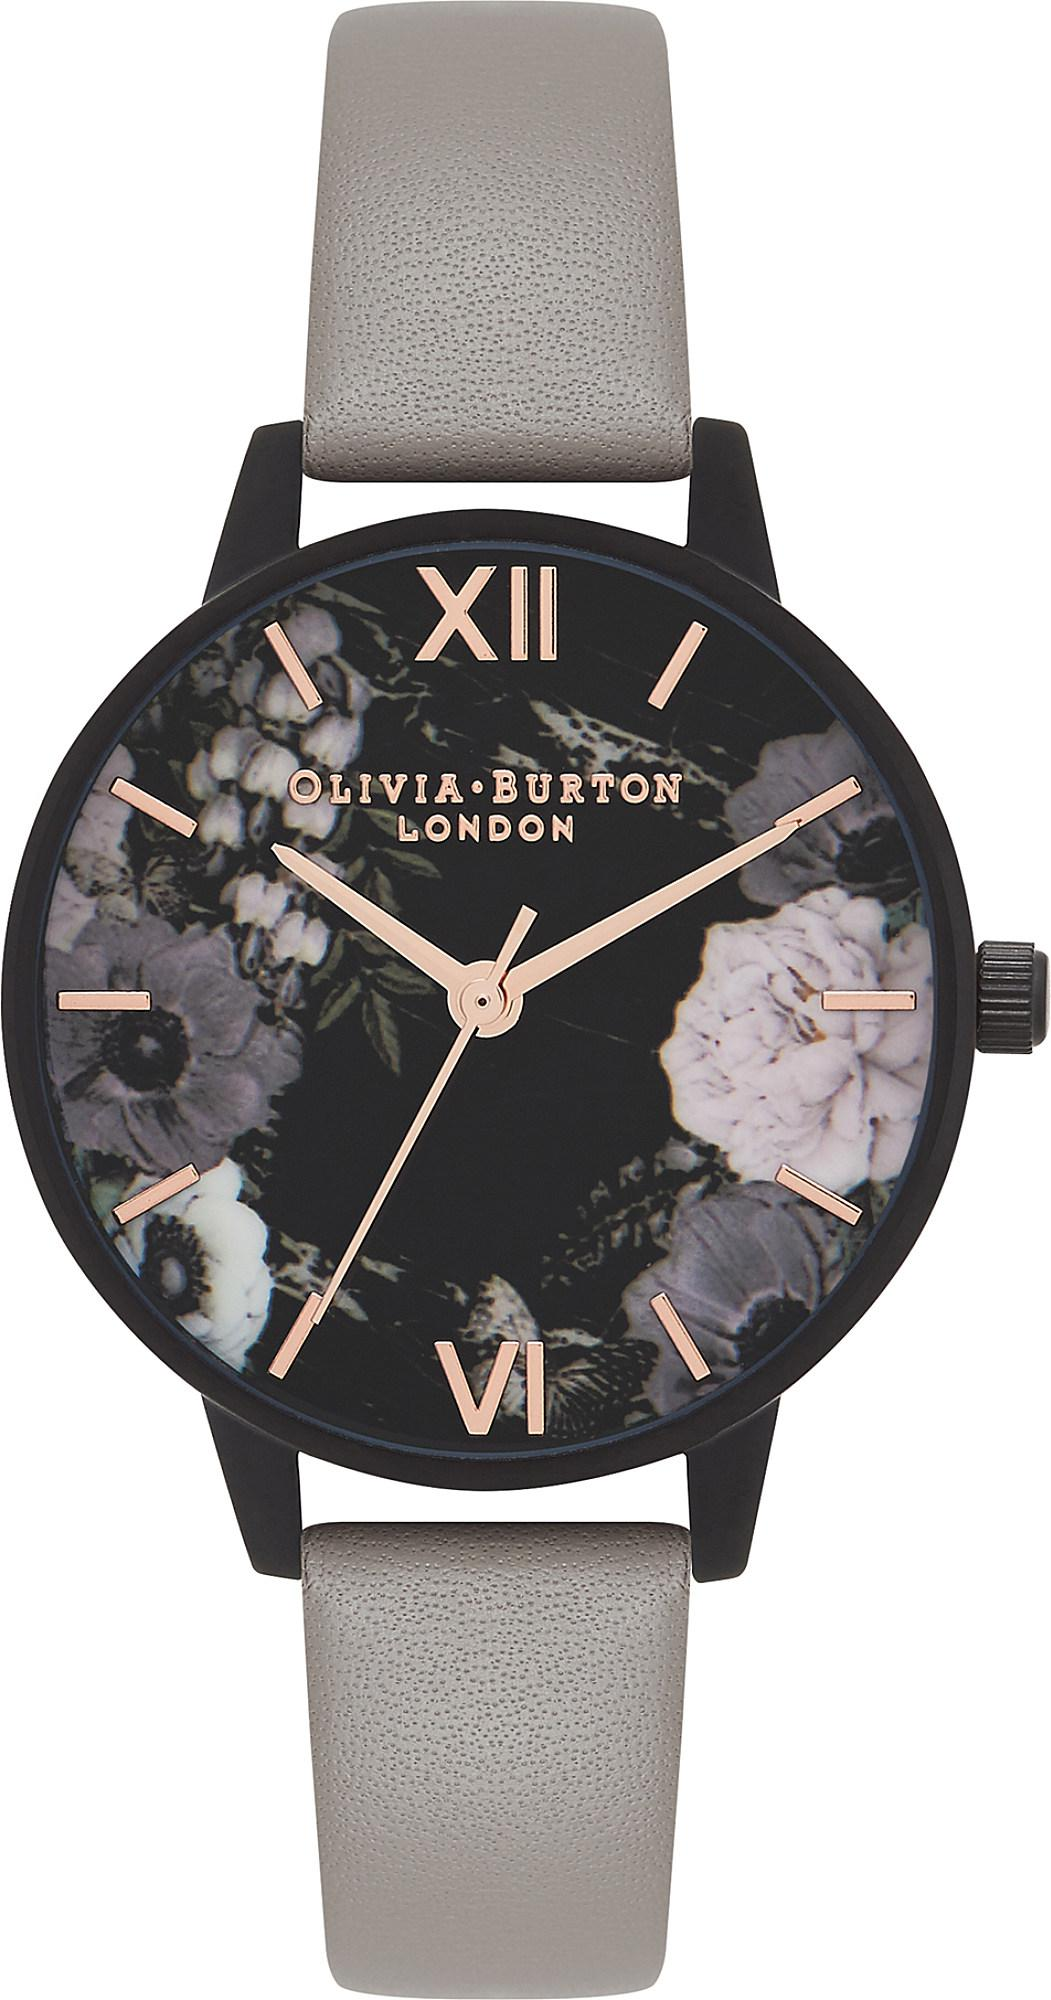 Olivia Burton Ob16ad24 After Dark Rose Gold And Leather Watch Lyst Fossil Es3816 Original Gallery